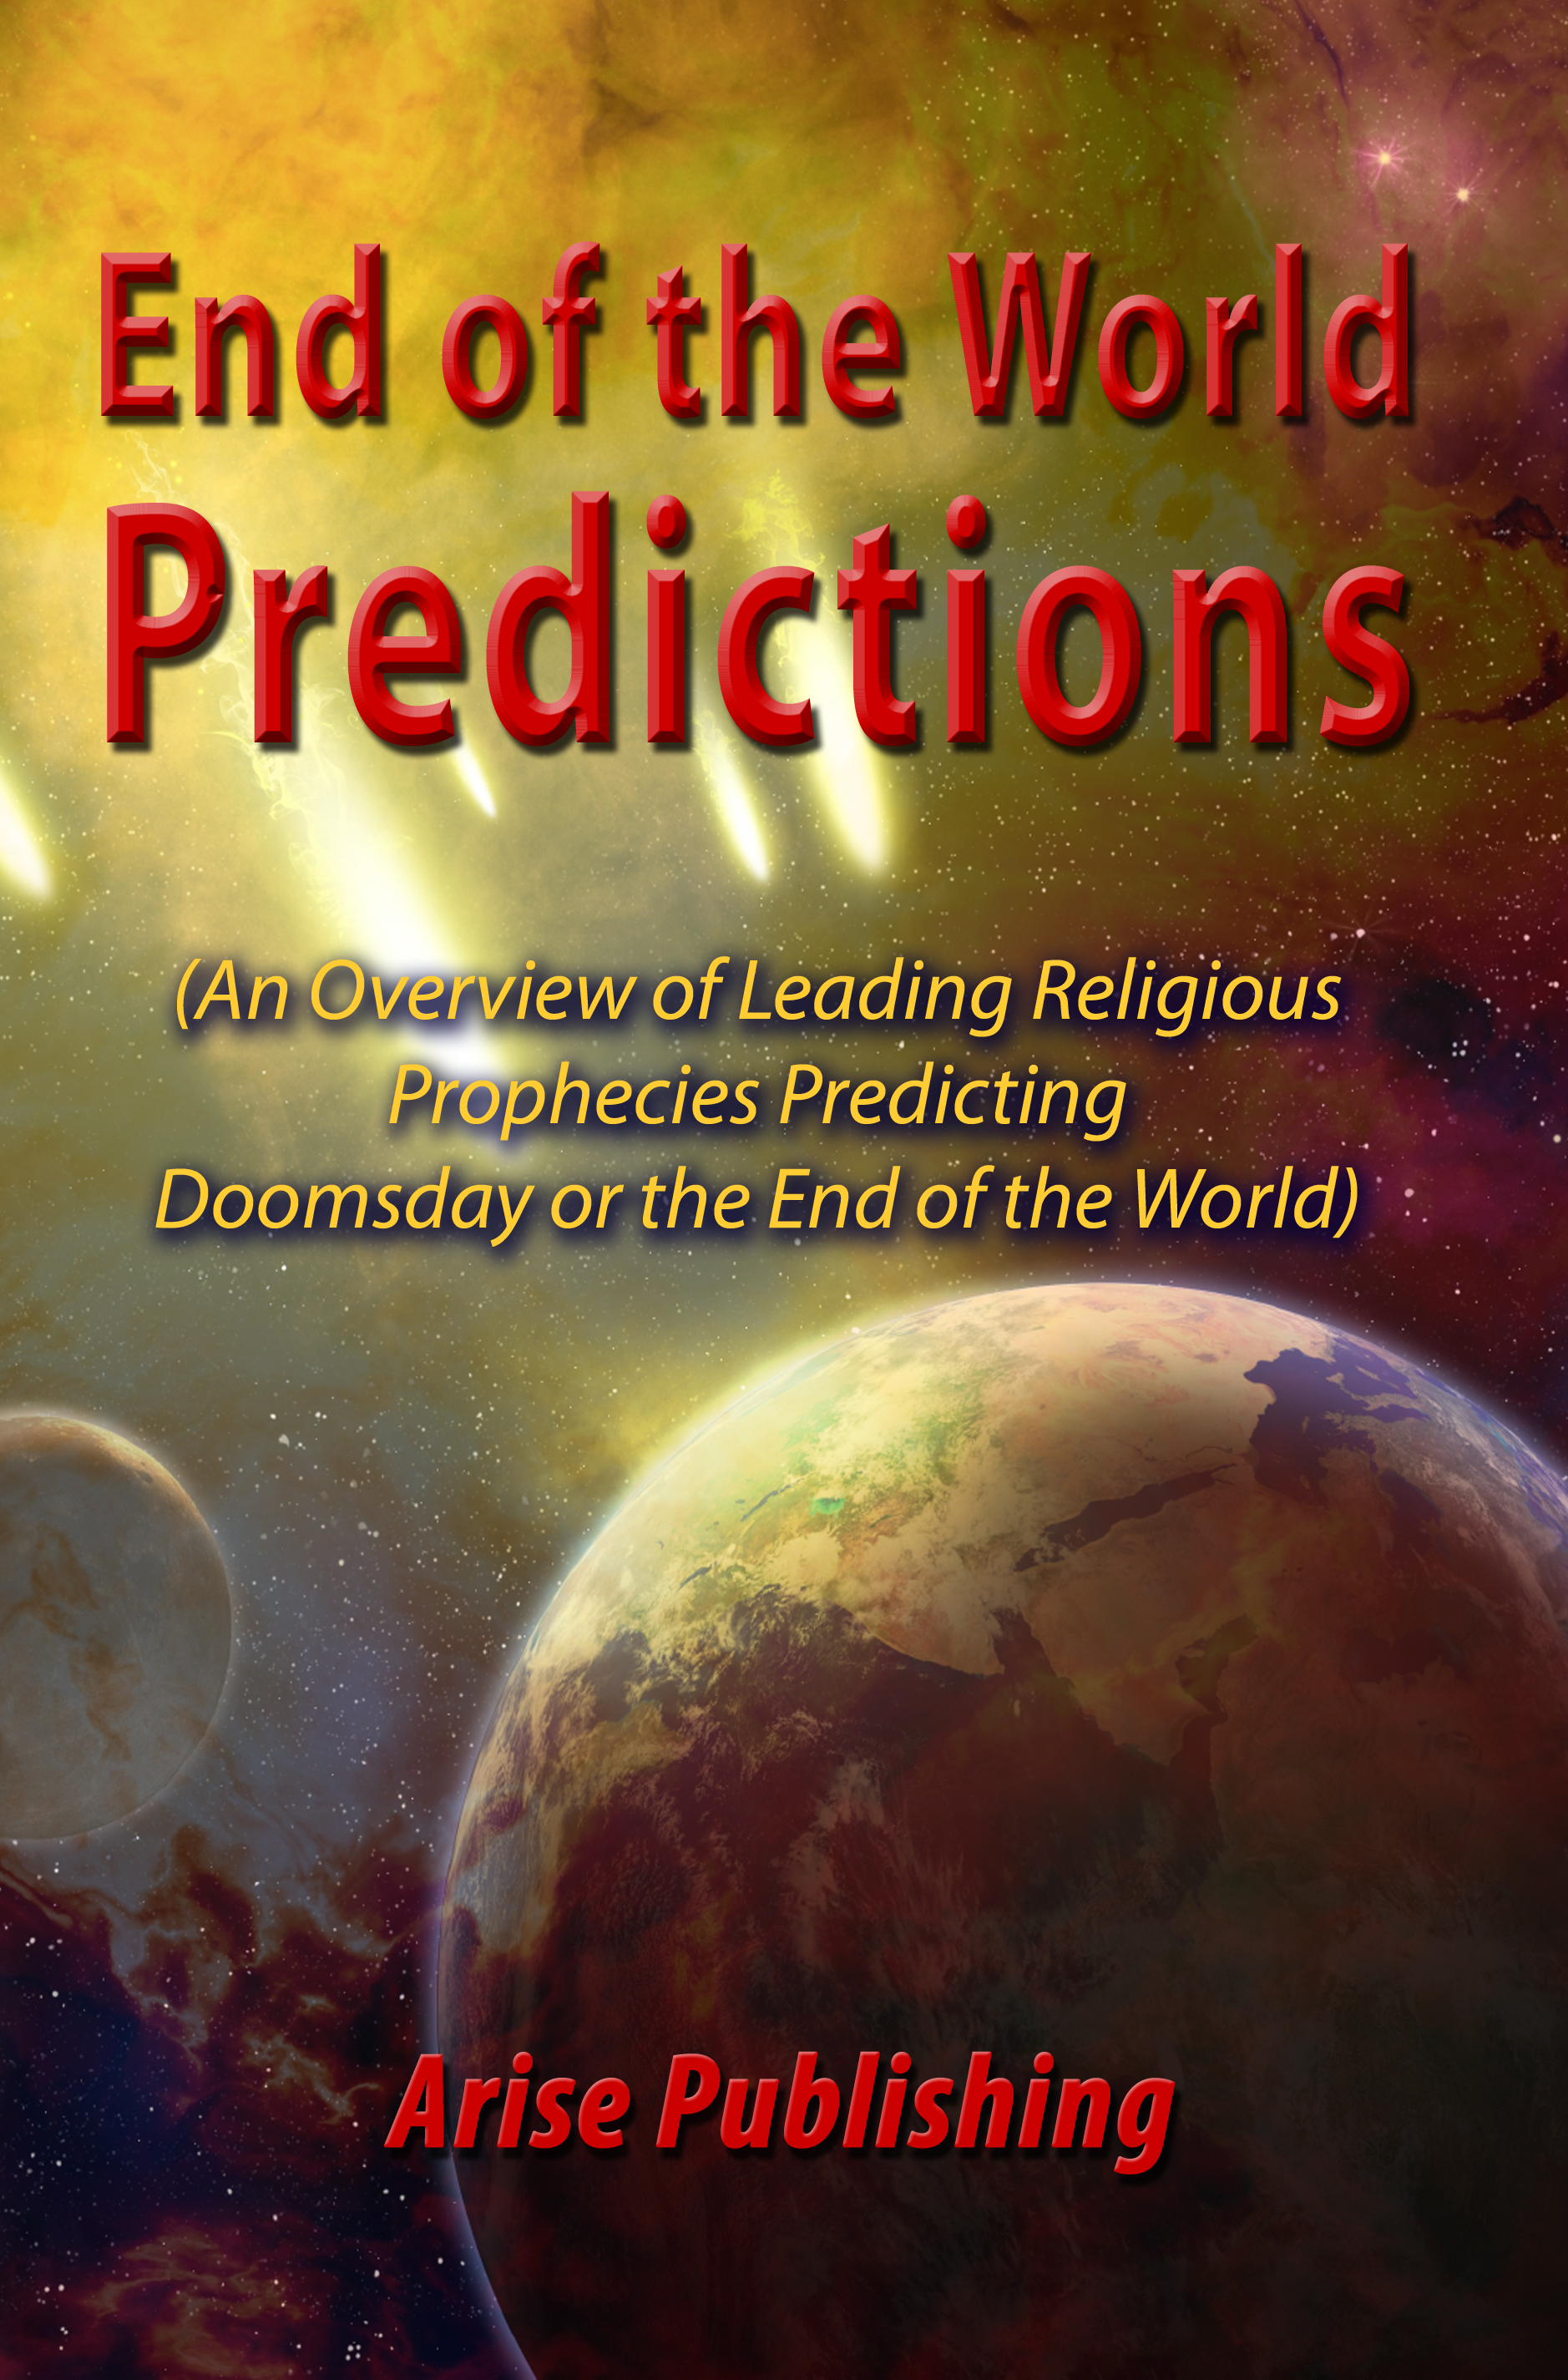 End of the World Predictions – The Book Apocalyptic Prophecies